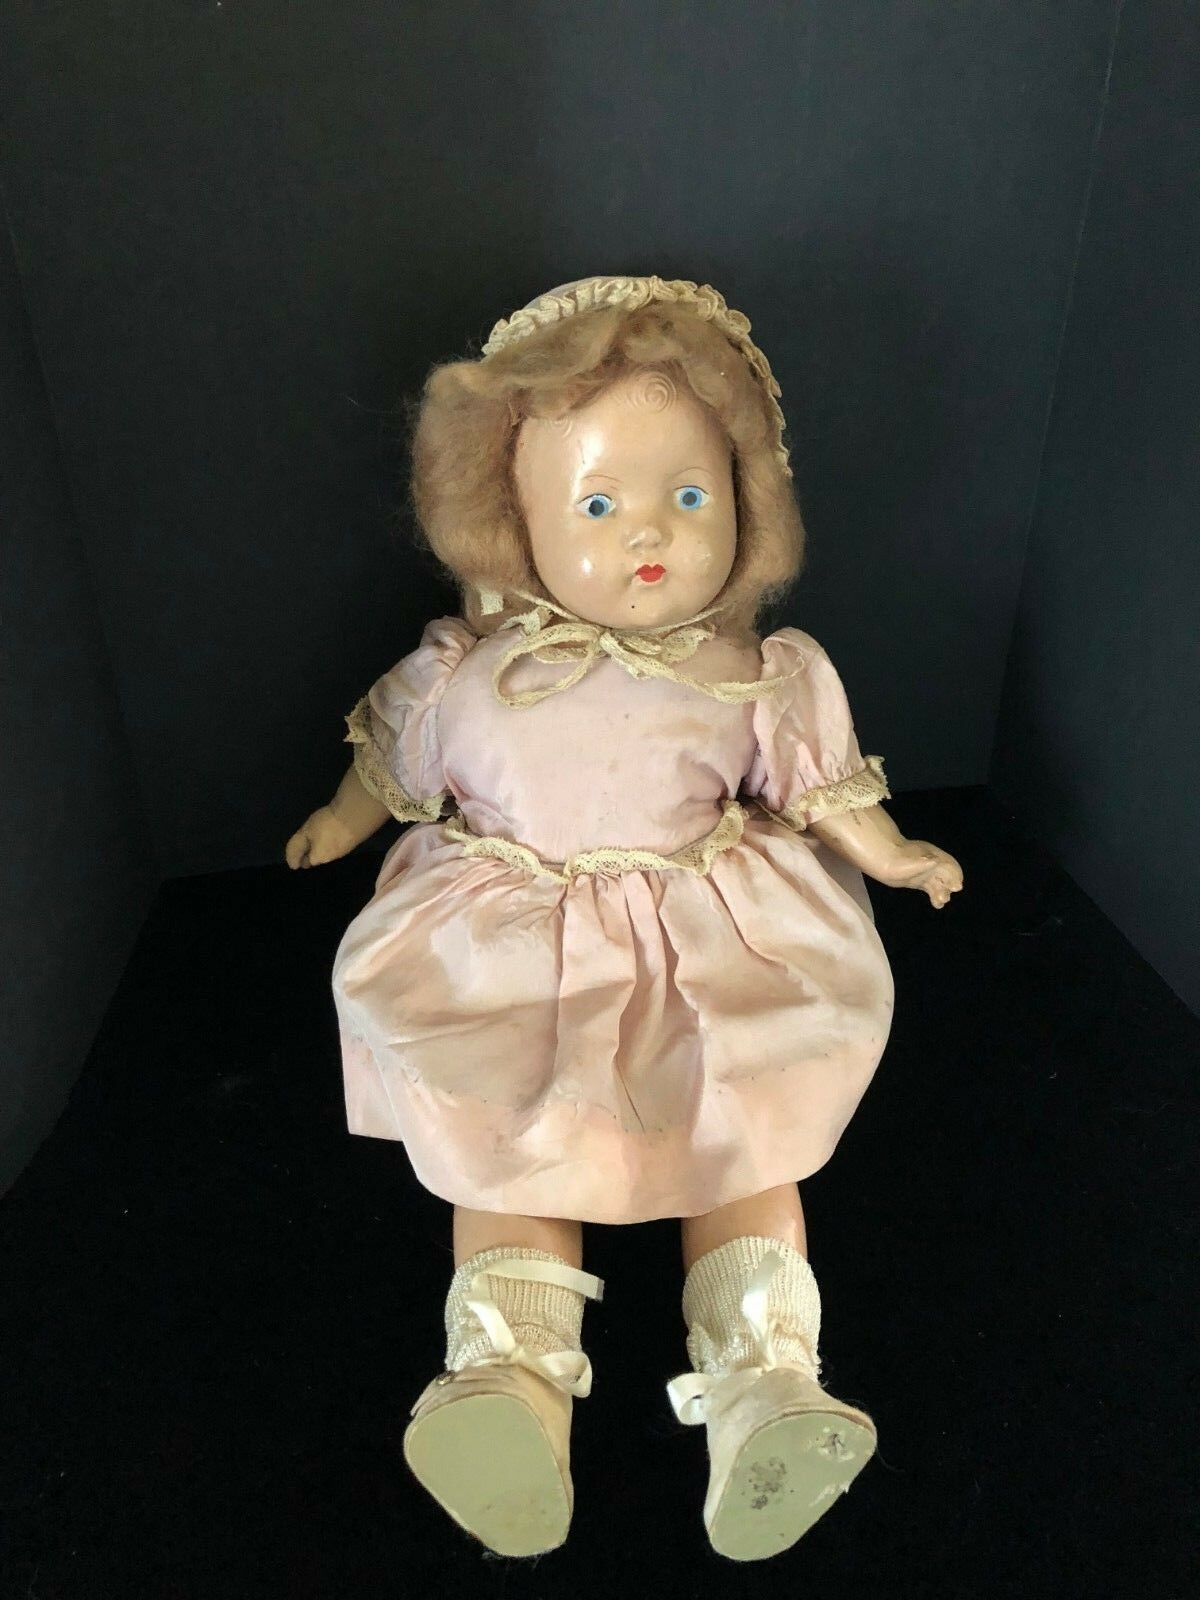 Antique Composition Baby Doll Original Clothing